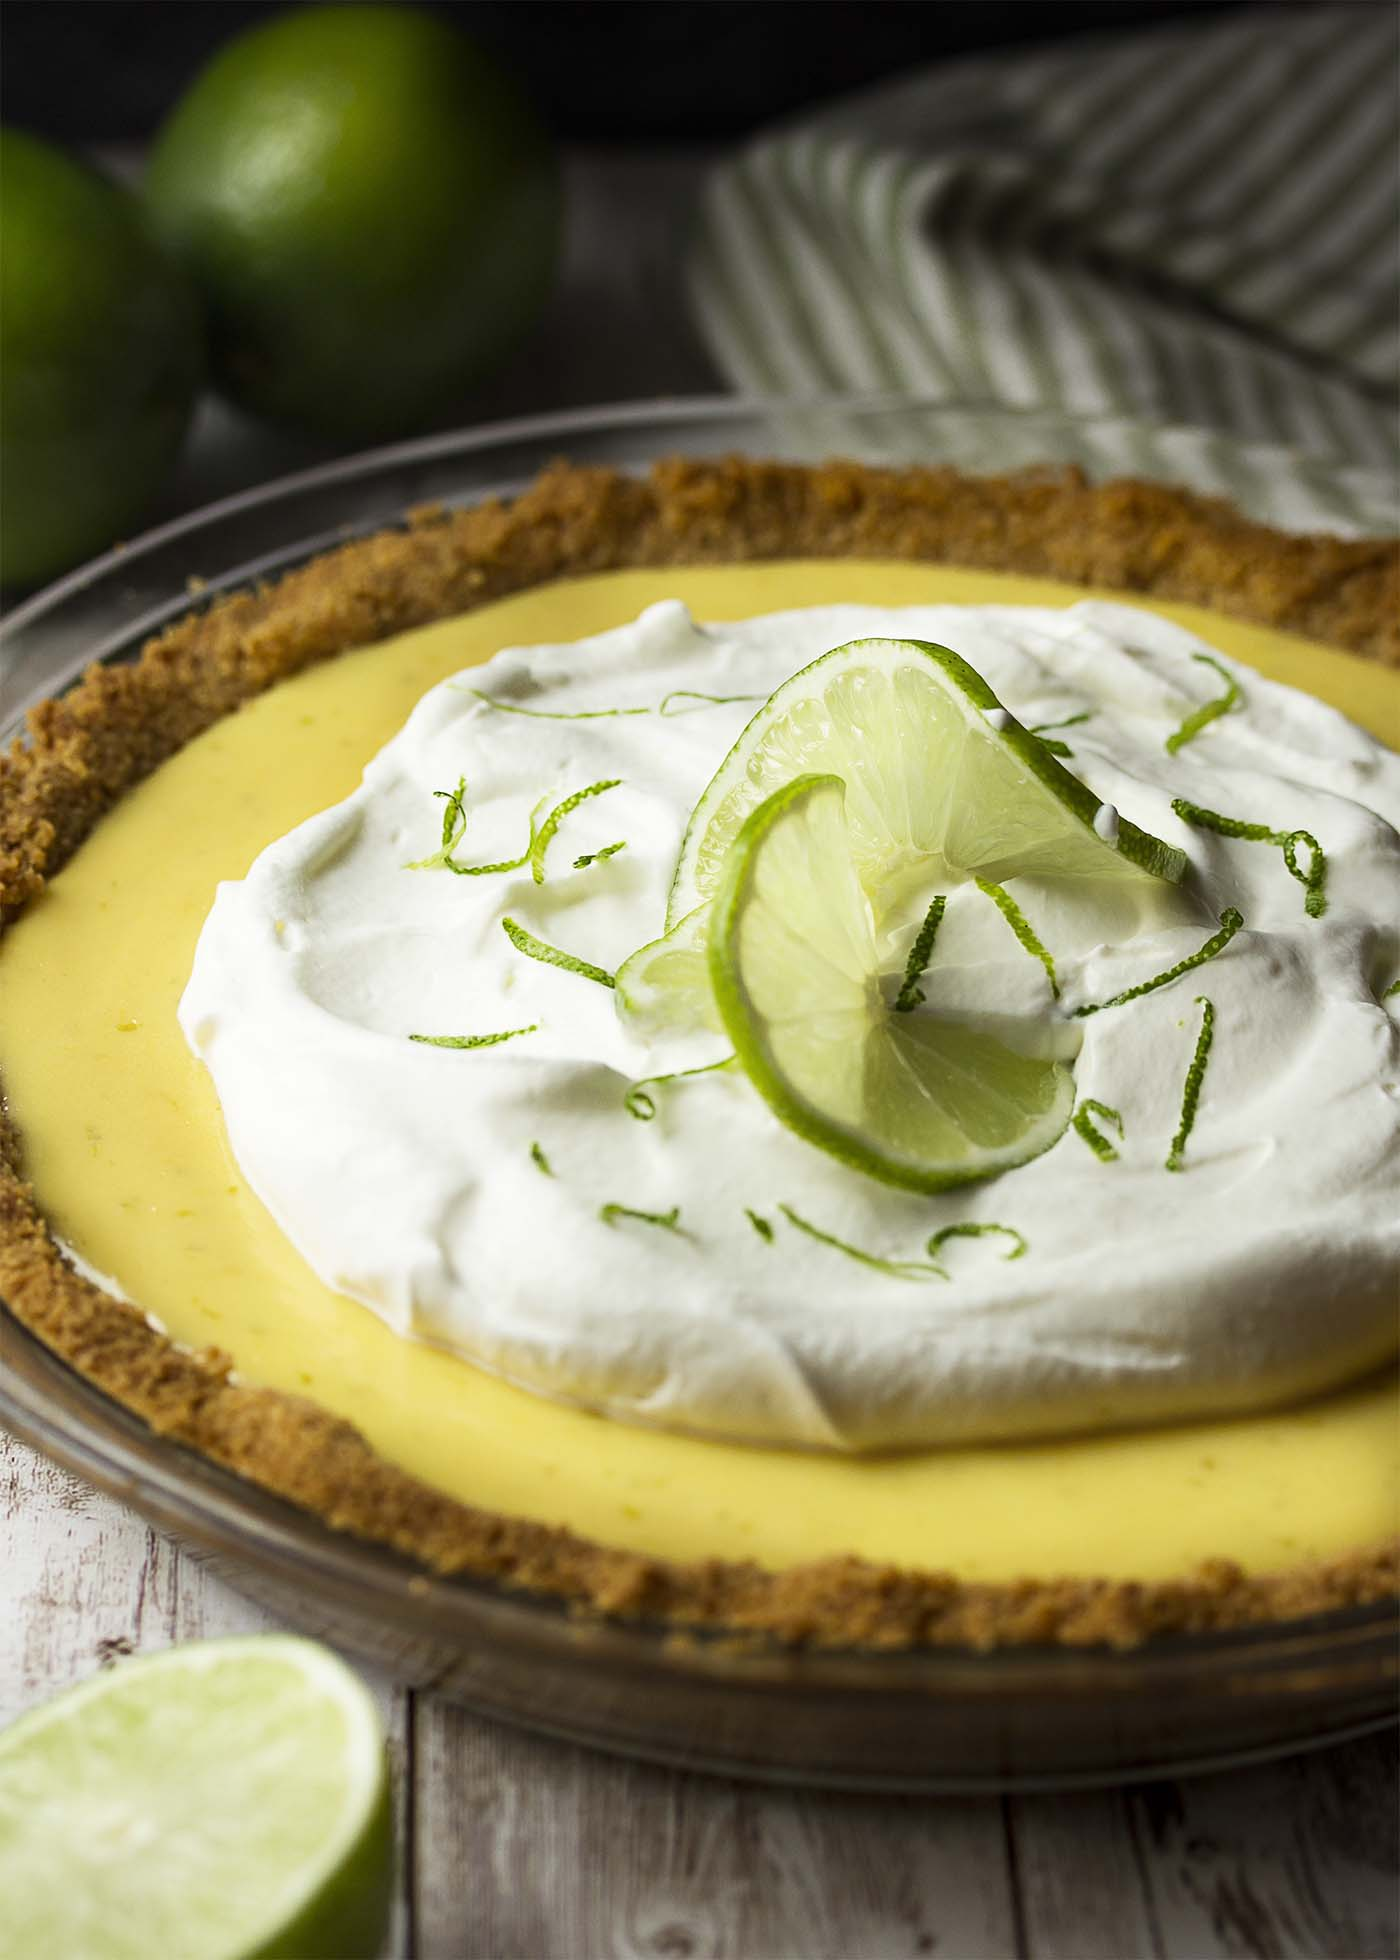 Whole pie with graham cracker crust, topped with whippd cream and lime zest.